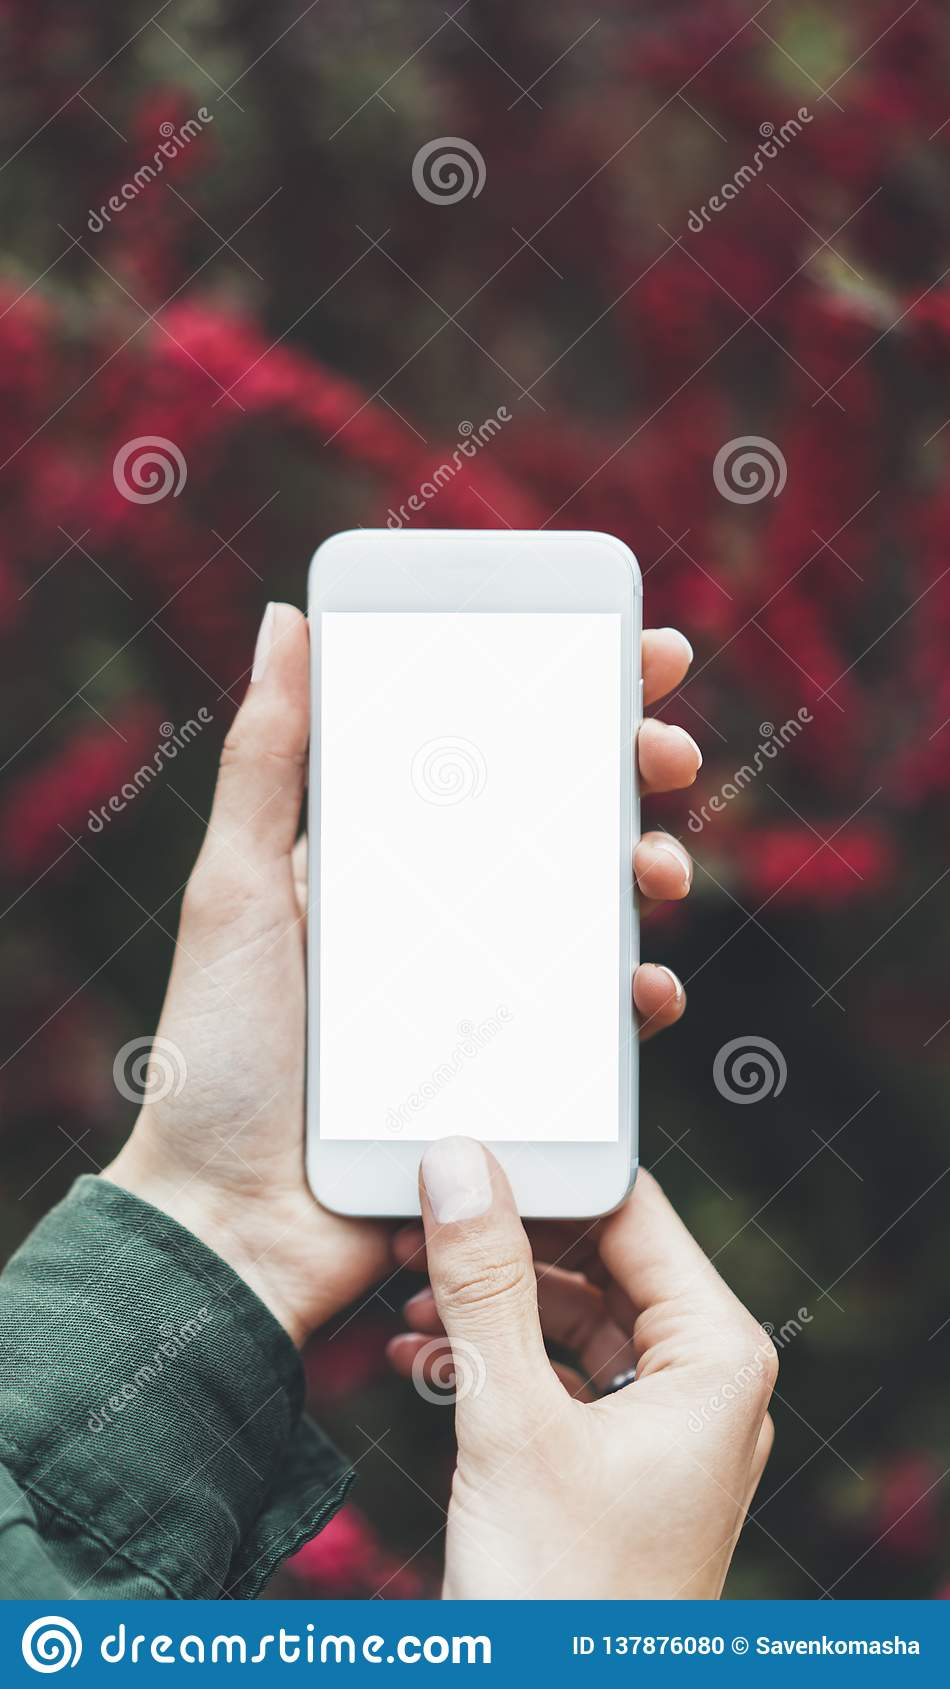 Hipster photograph on digital smartphone or technology, mock up of blank screen. Girl using cellphone on red flowers background